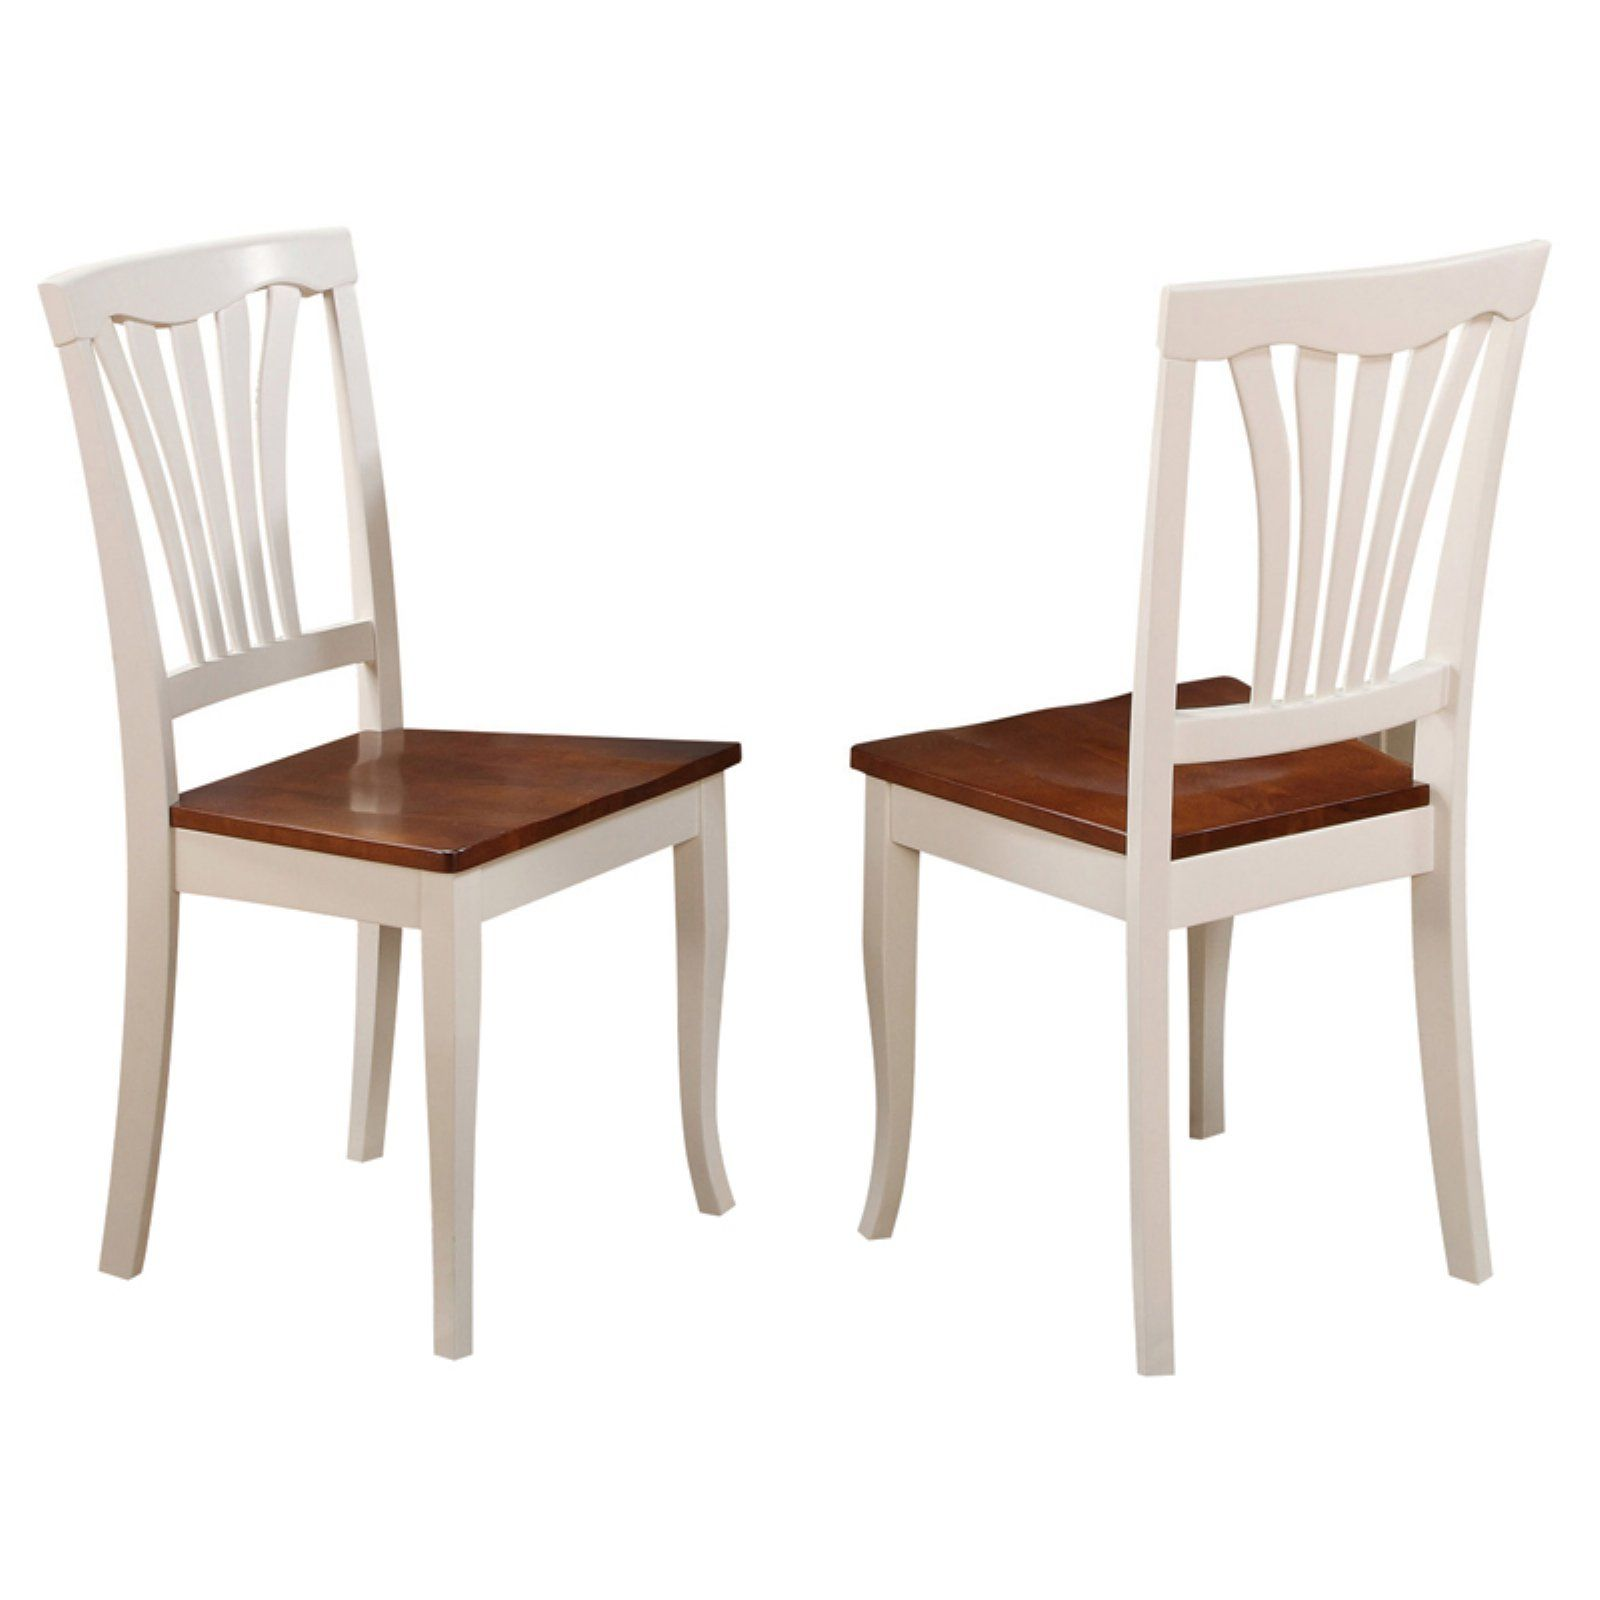 East West Furniture Avon Dining Chair With Wooden Seat Set Of 2 Solid Wood Dining Chairs Side Chairs Dining Dining Chairs